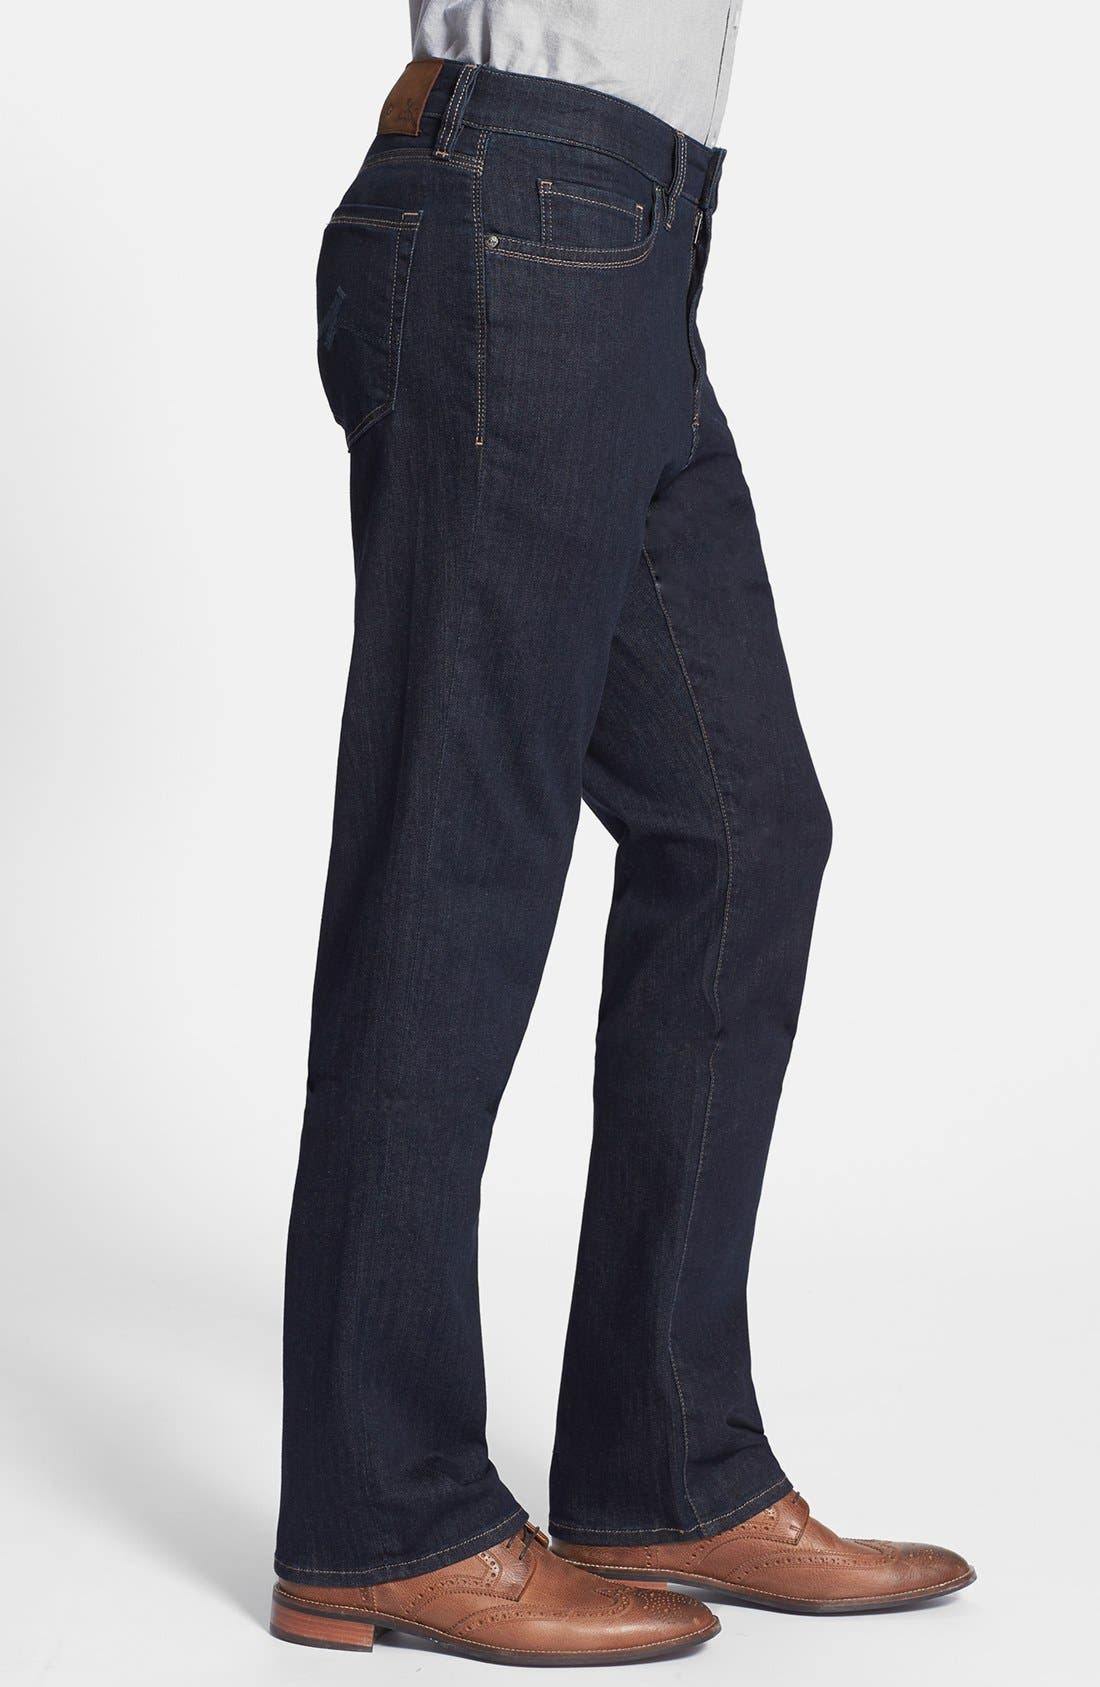 'Charisma' Classic Relaxed Fit Jeans,                             Alternate thumbnail 3, color,                             Midnight Cashmere